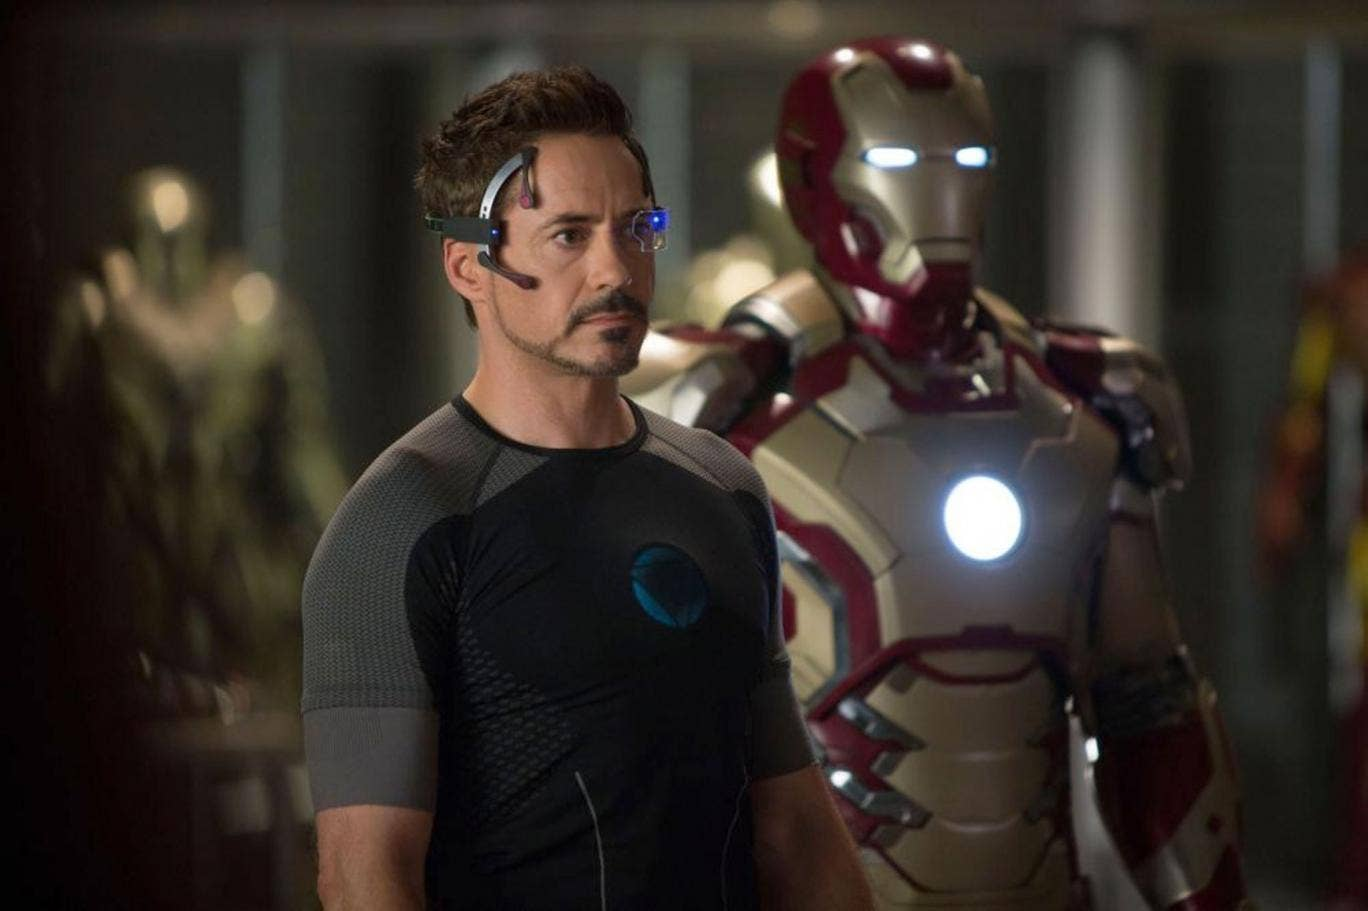 The Stark knight: Robert Downey Jr ups his game in Shane Black's spectacular and thrilling 'Iron Man 3'